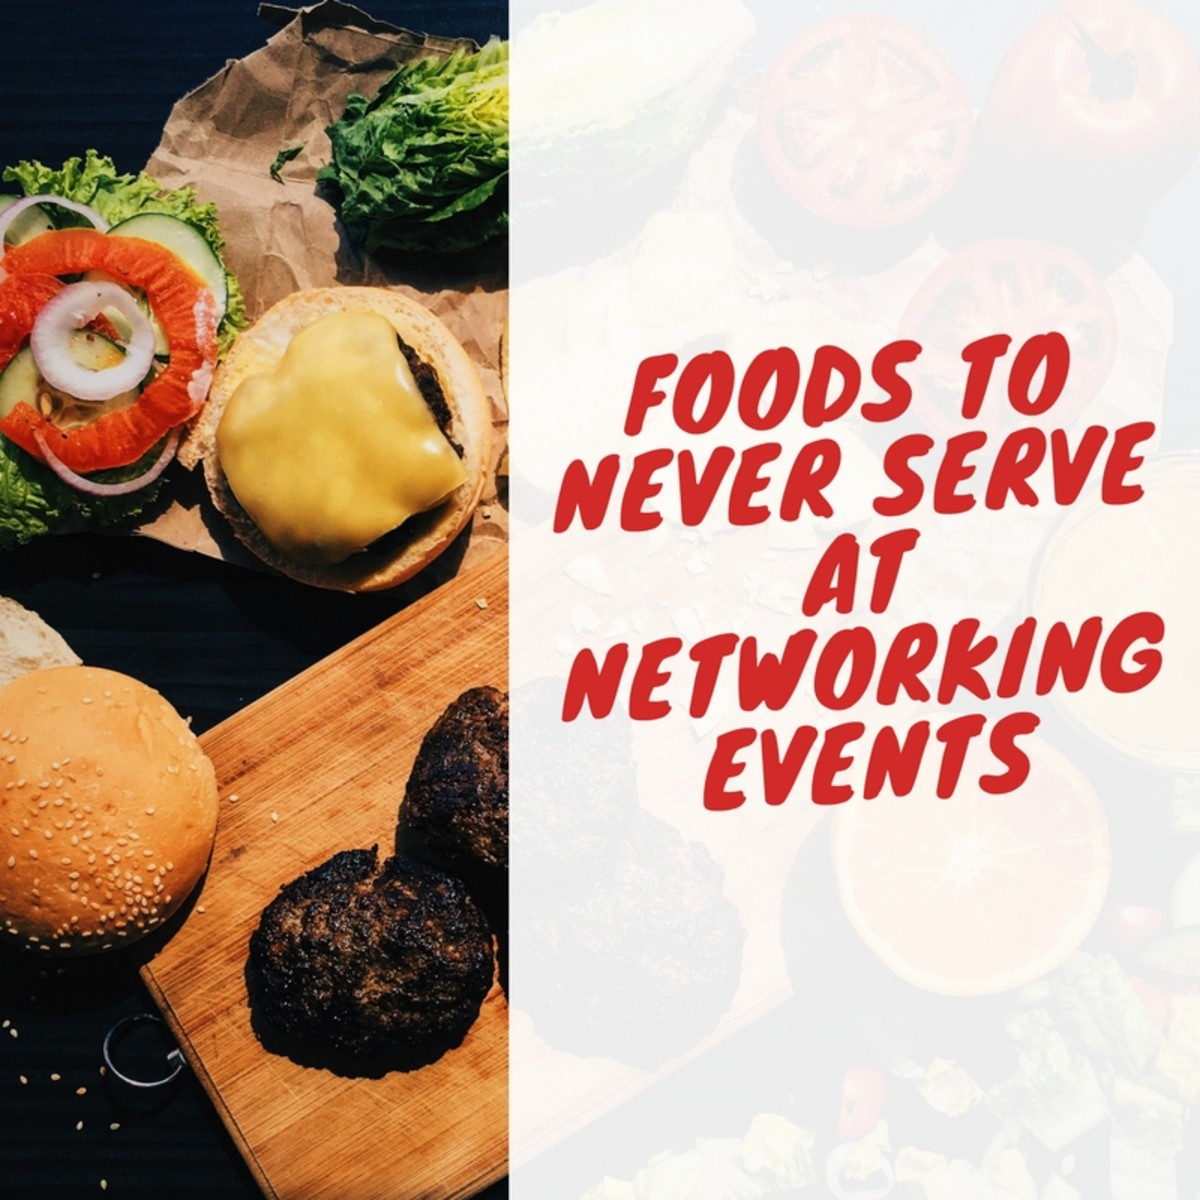 Networking events are great for meeting customers and colleagues. But some foods can make these events challenging and get in the way of making connections.